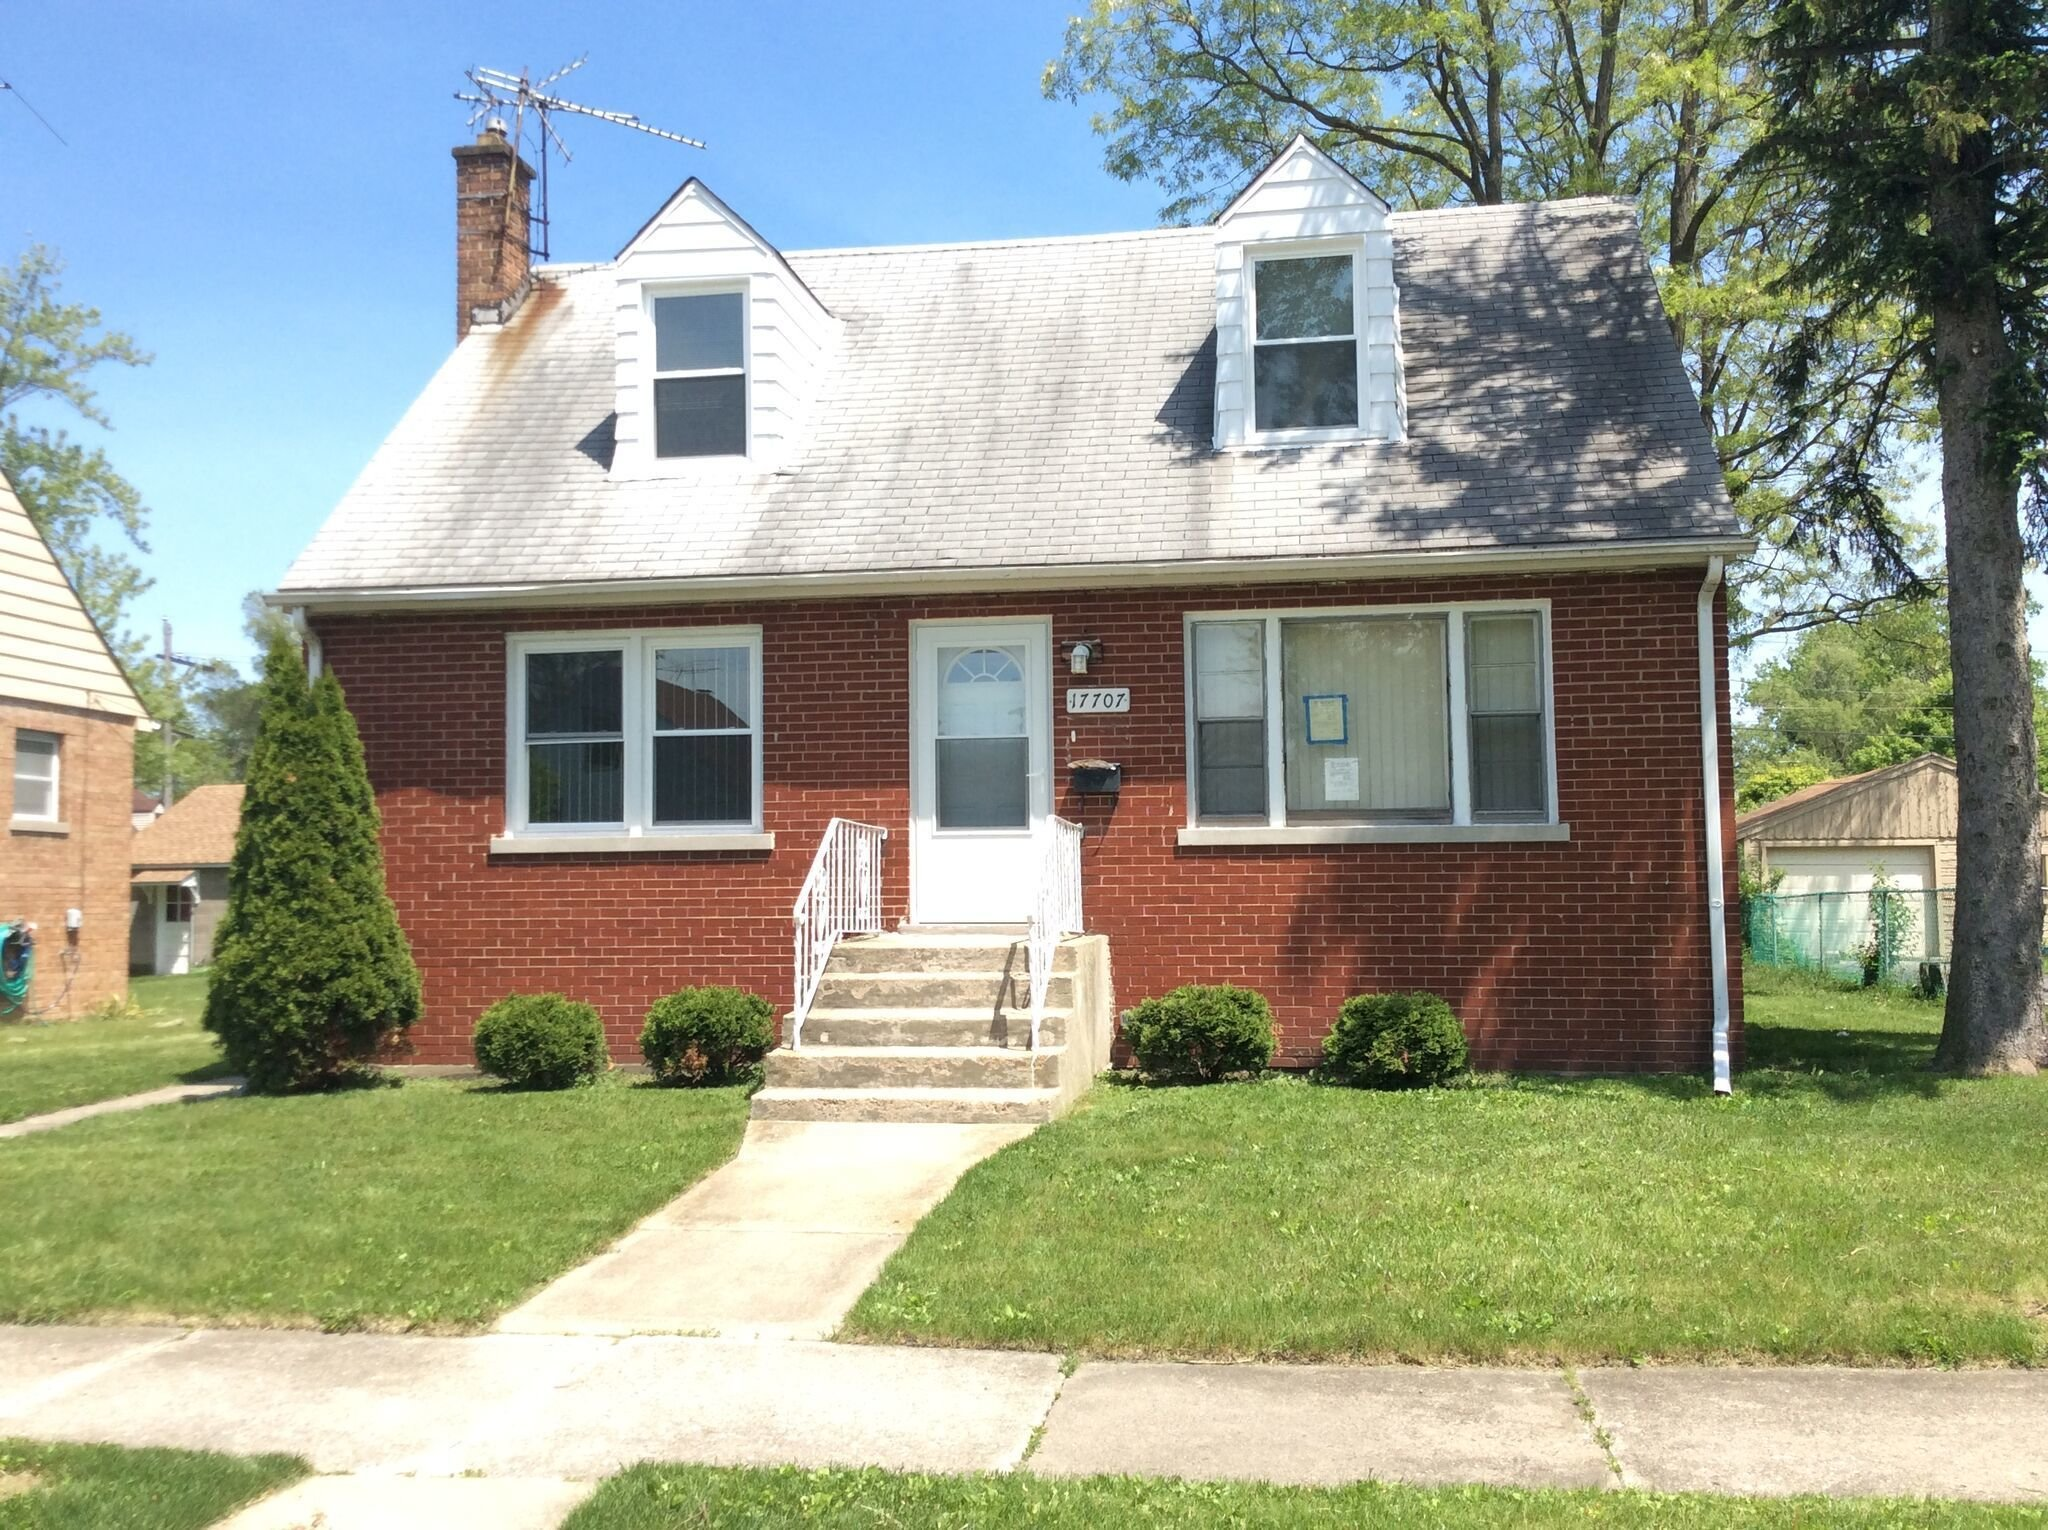 Best Craigslist 2 Bedroom House For Rent With Pictures ...